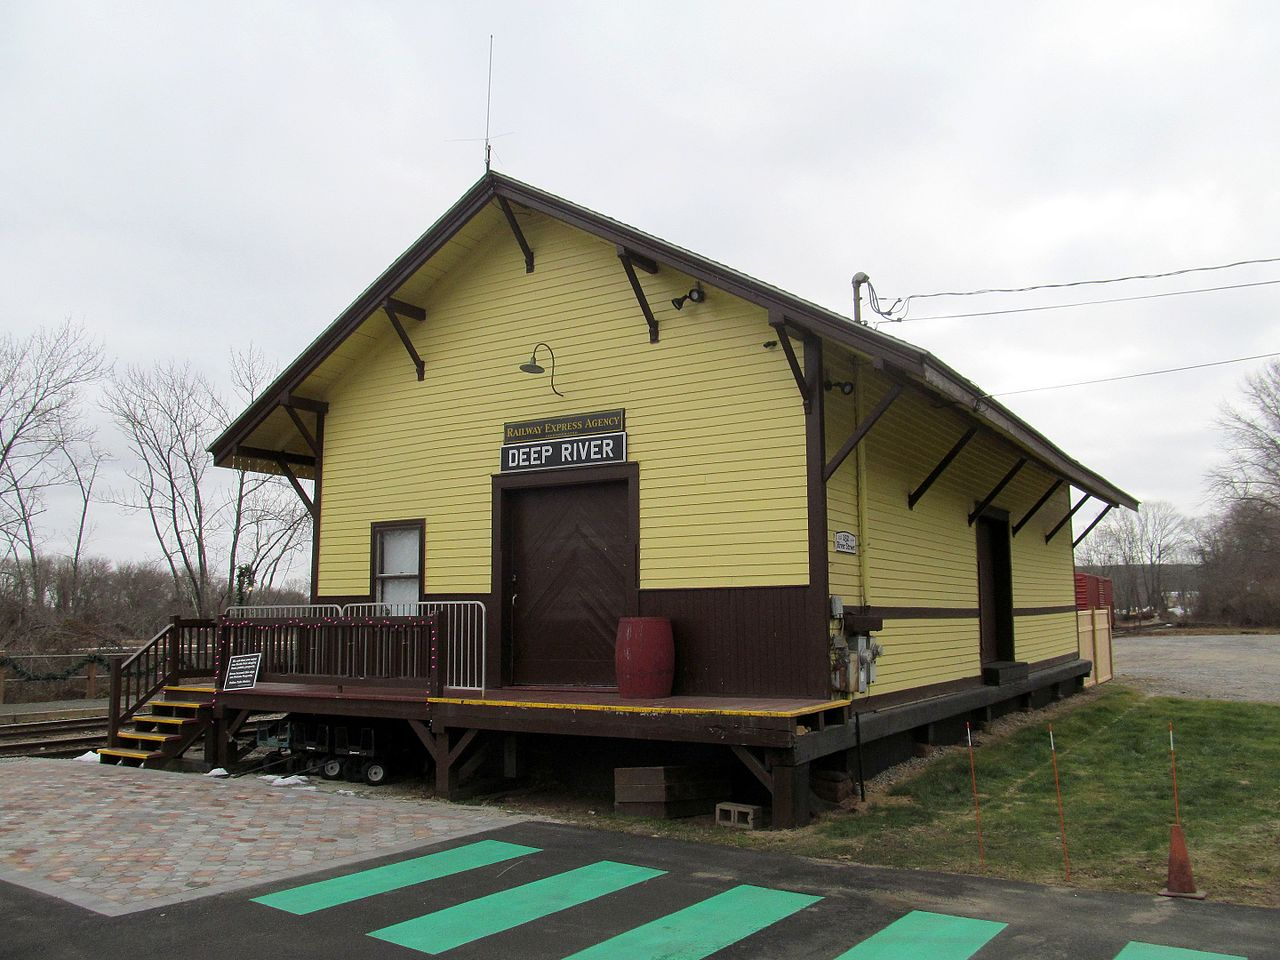 The Deep River Freight Station was built in 1915 and is listed on that National Register of Historic Places.